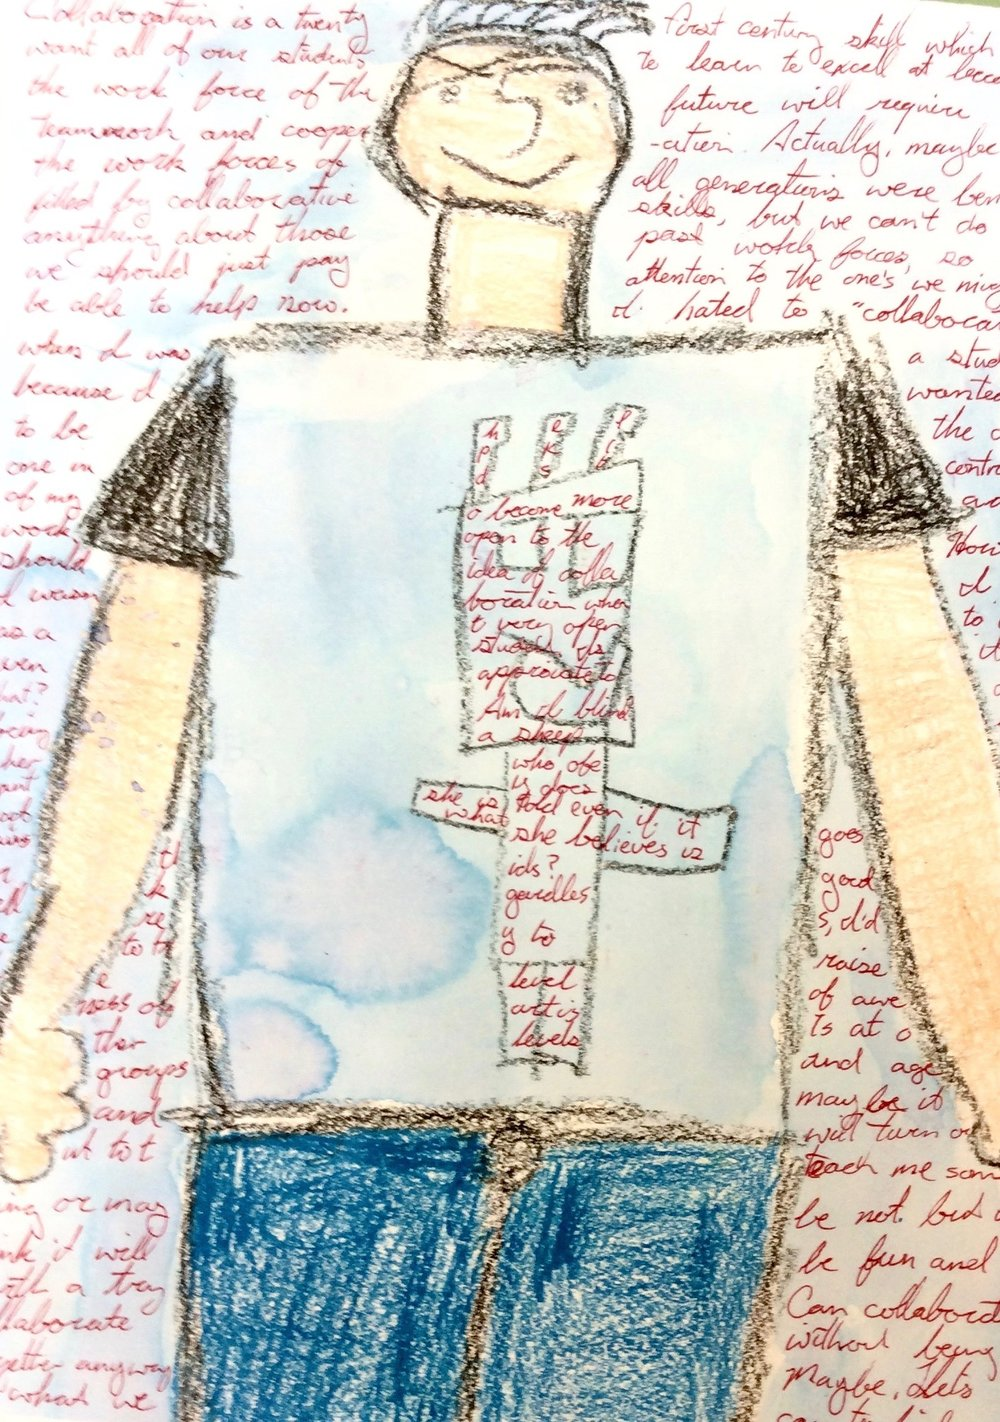 Wonderings on Third Grade Guy My work into and over discarded student drawing